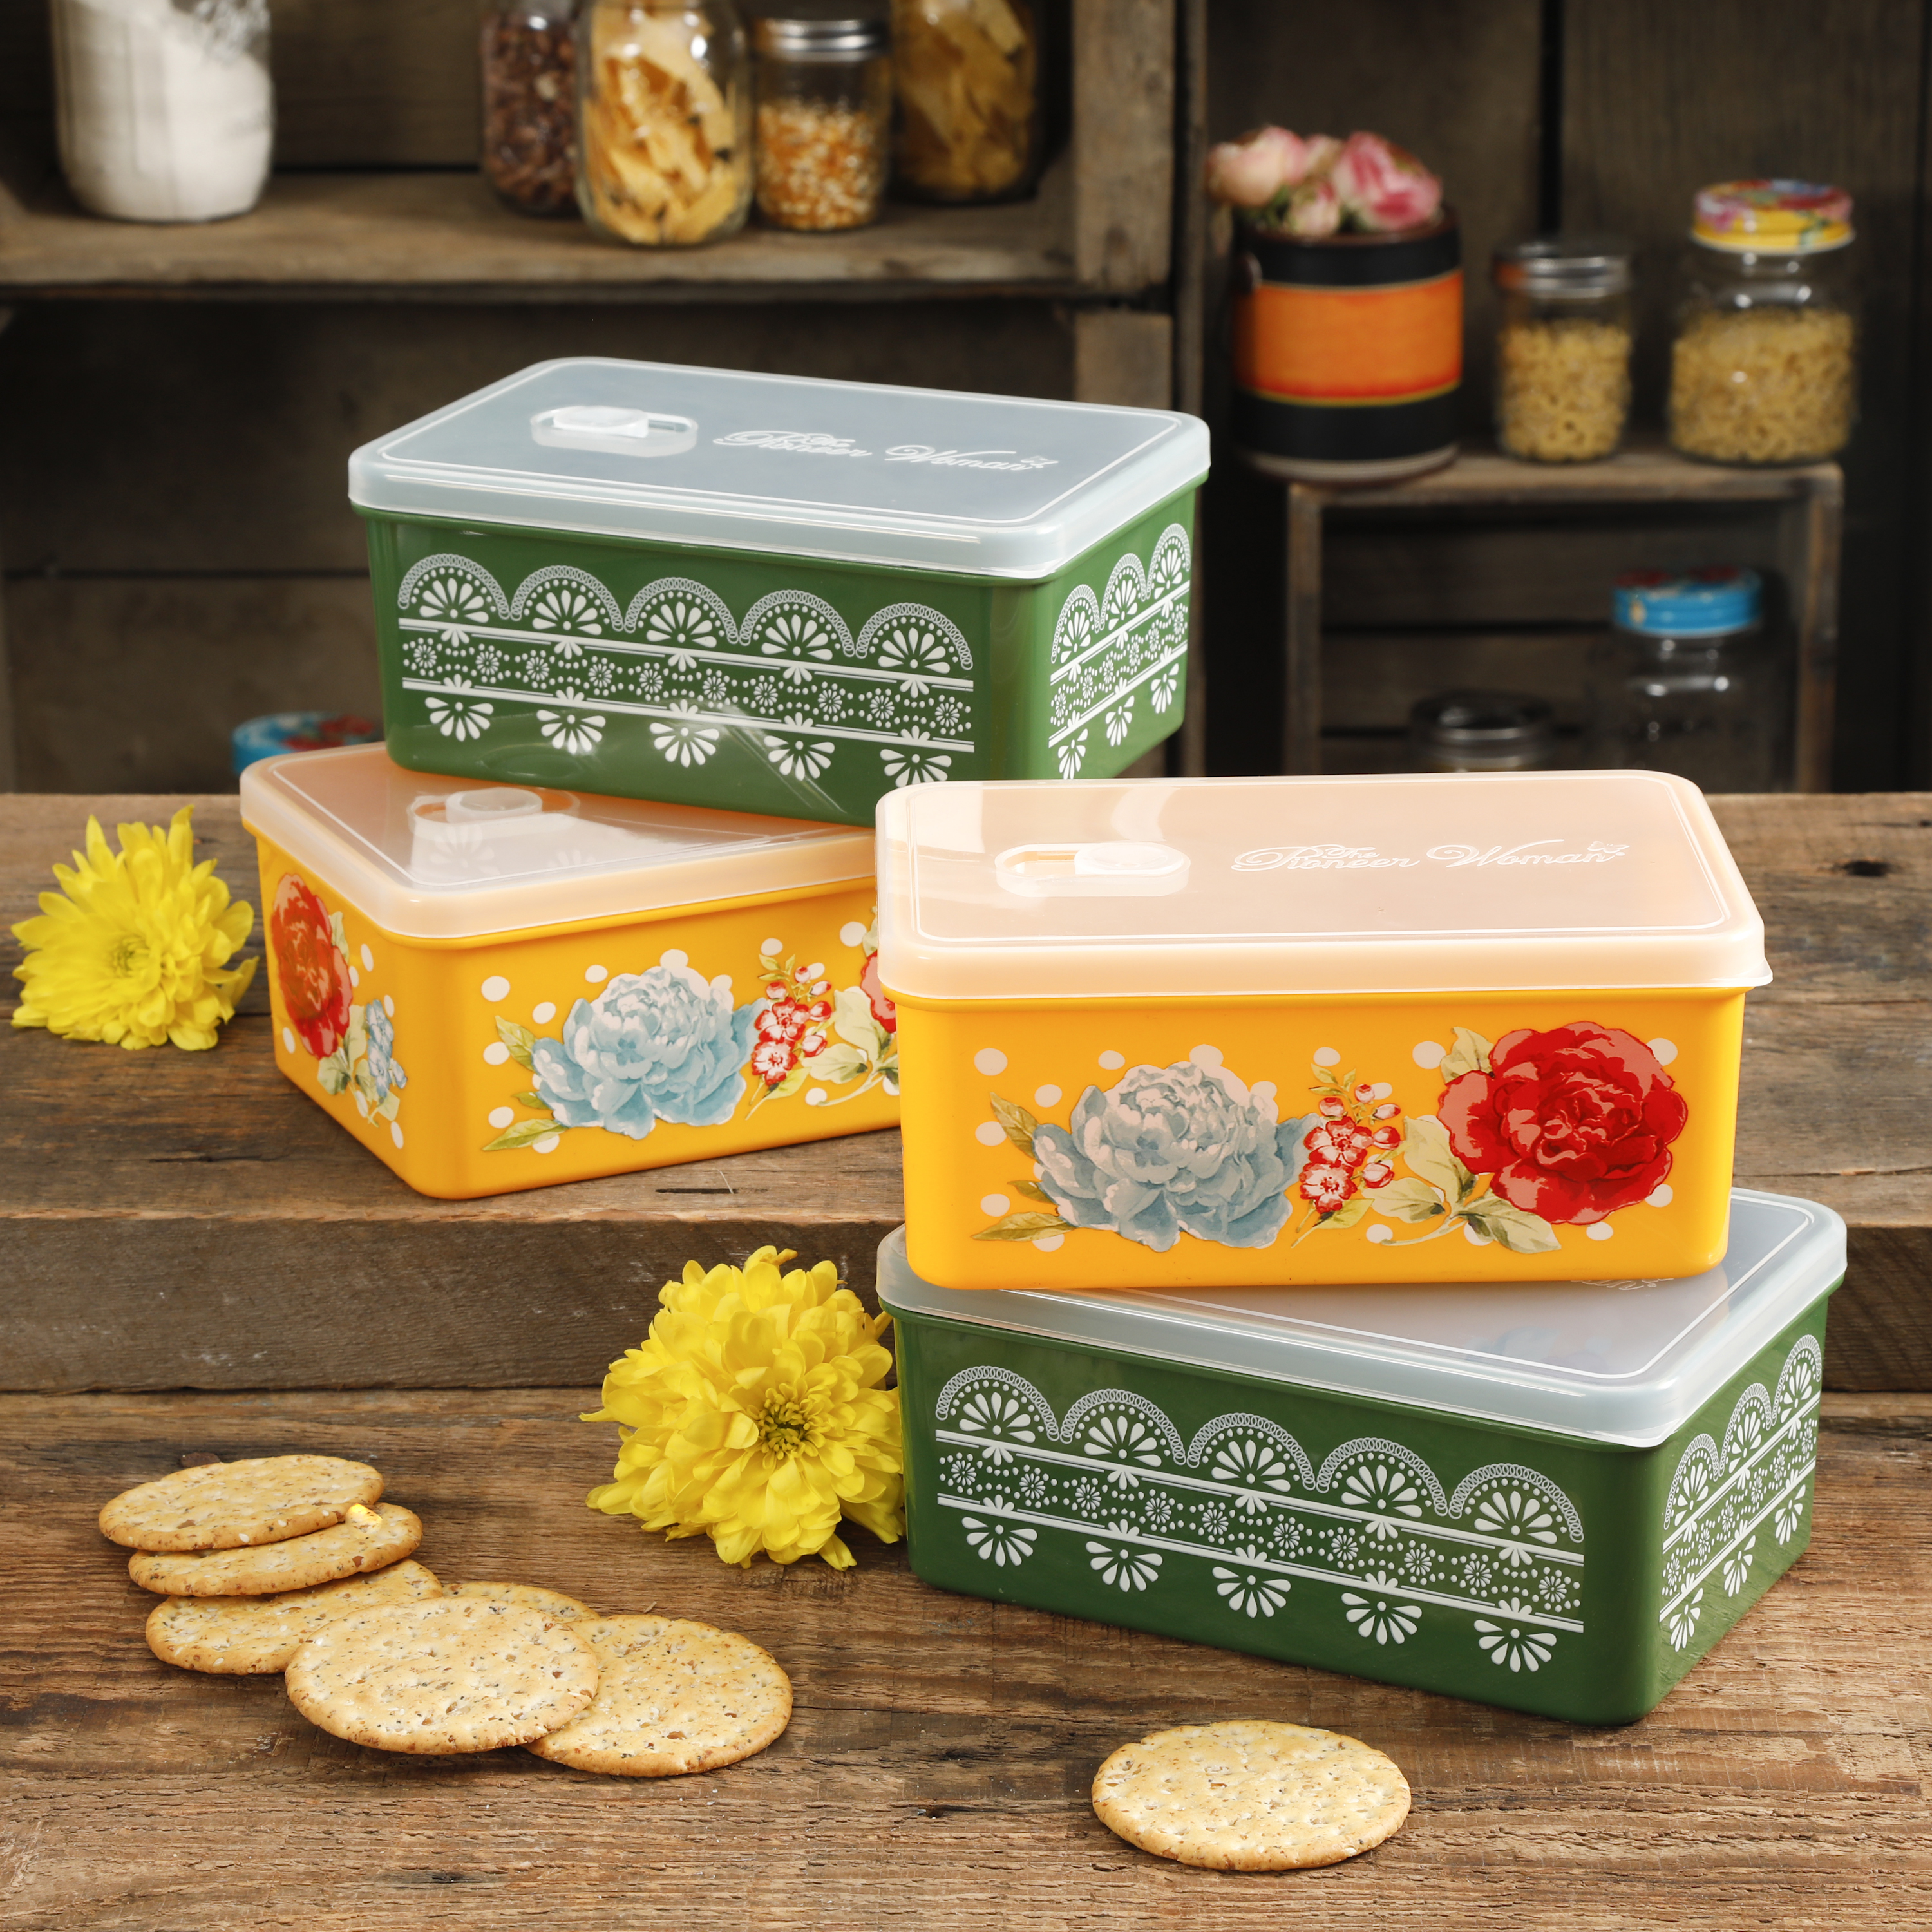 Rectangular Containers 4-Piece Set $9.97